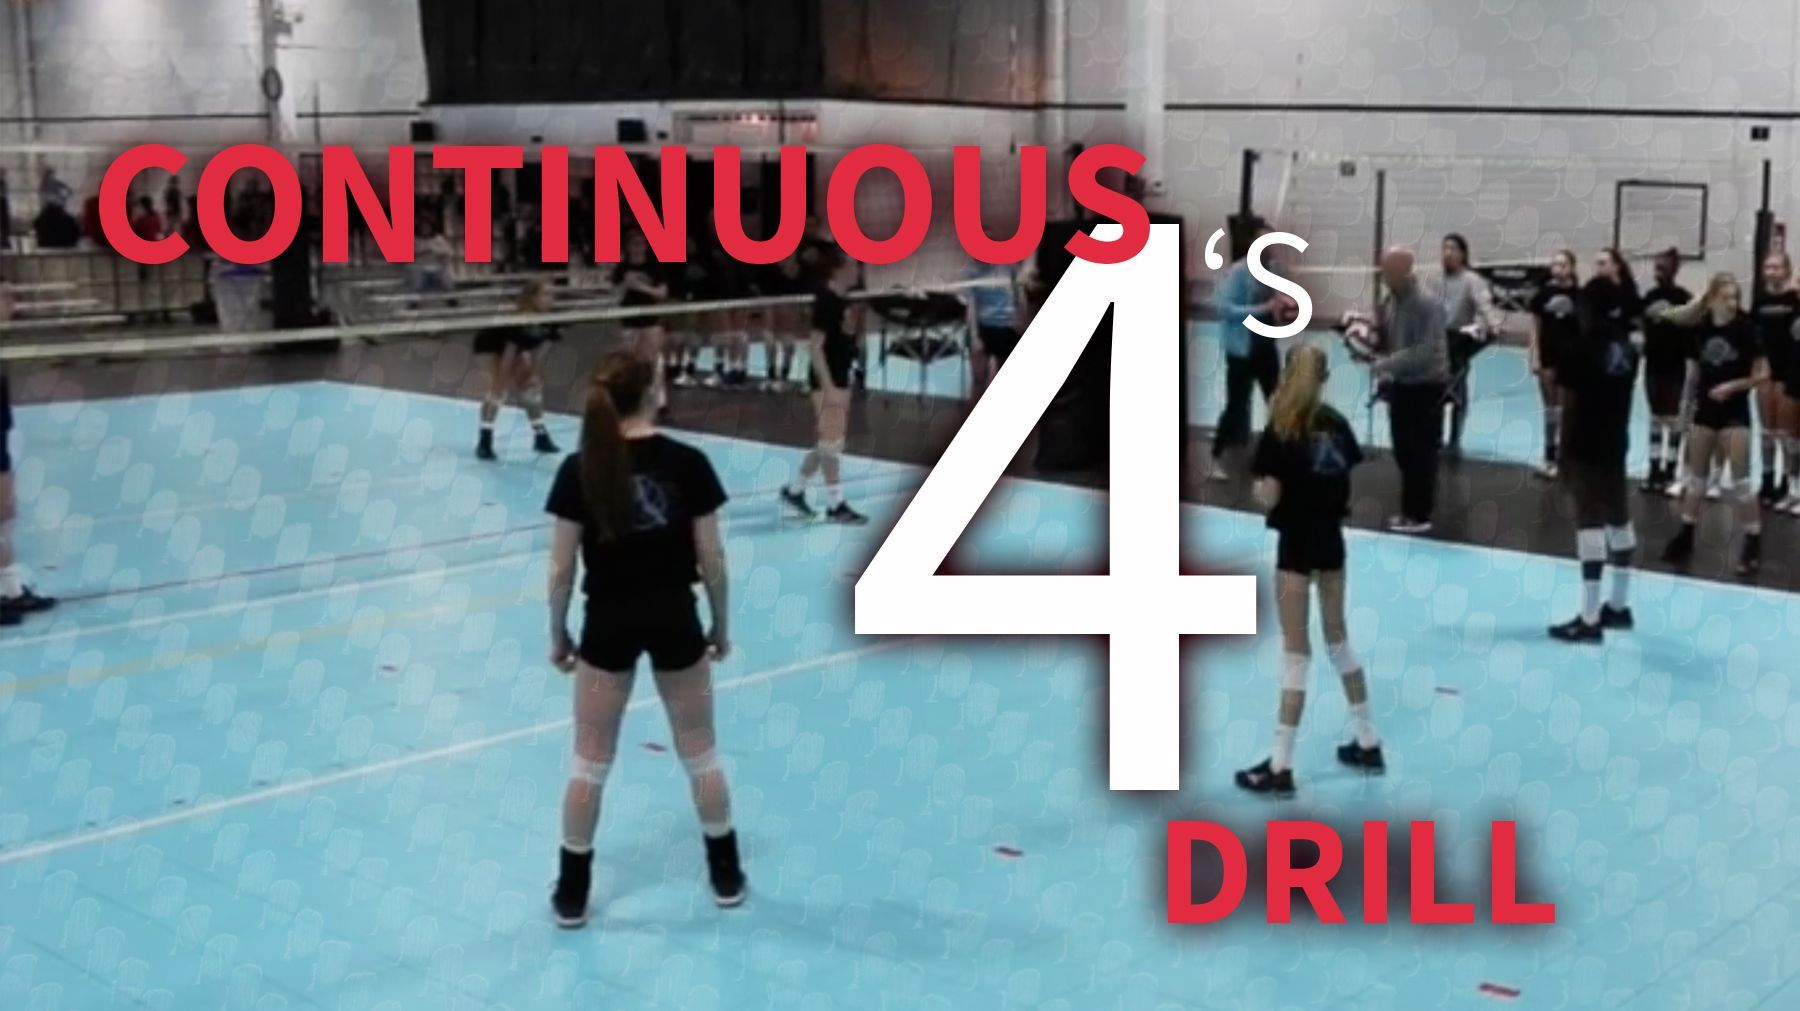 Best Volleyball Matches Continuous 4 S Volleyball Drill The Art Of Coaching Volleyball Mike Scha In 2020 Volleyball Workouts Volleyball Drills Volleyball Practice